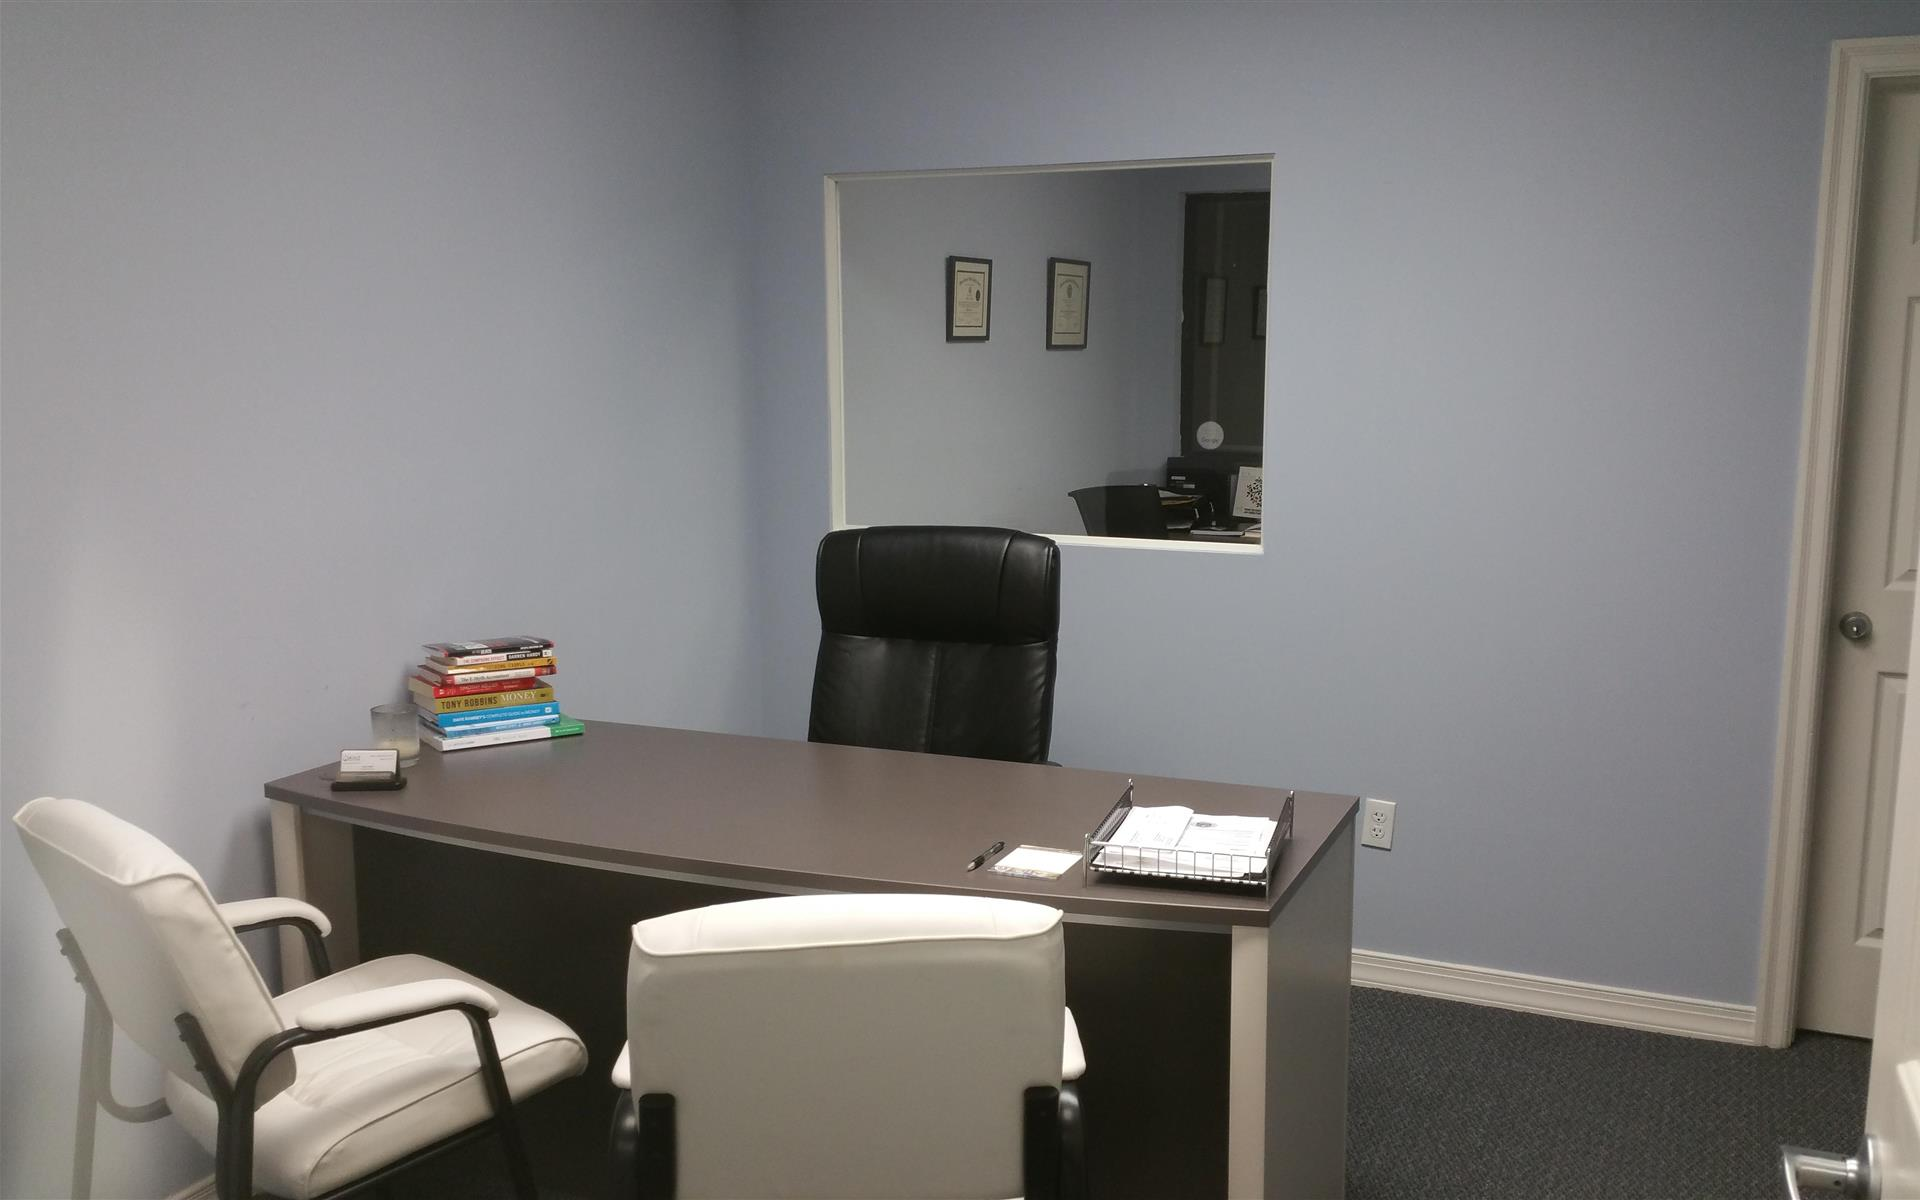 A to Z Financial Solutions, LLC - Kendall Dr. and 107 ave, Suite 208